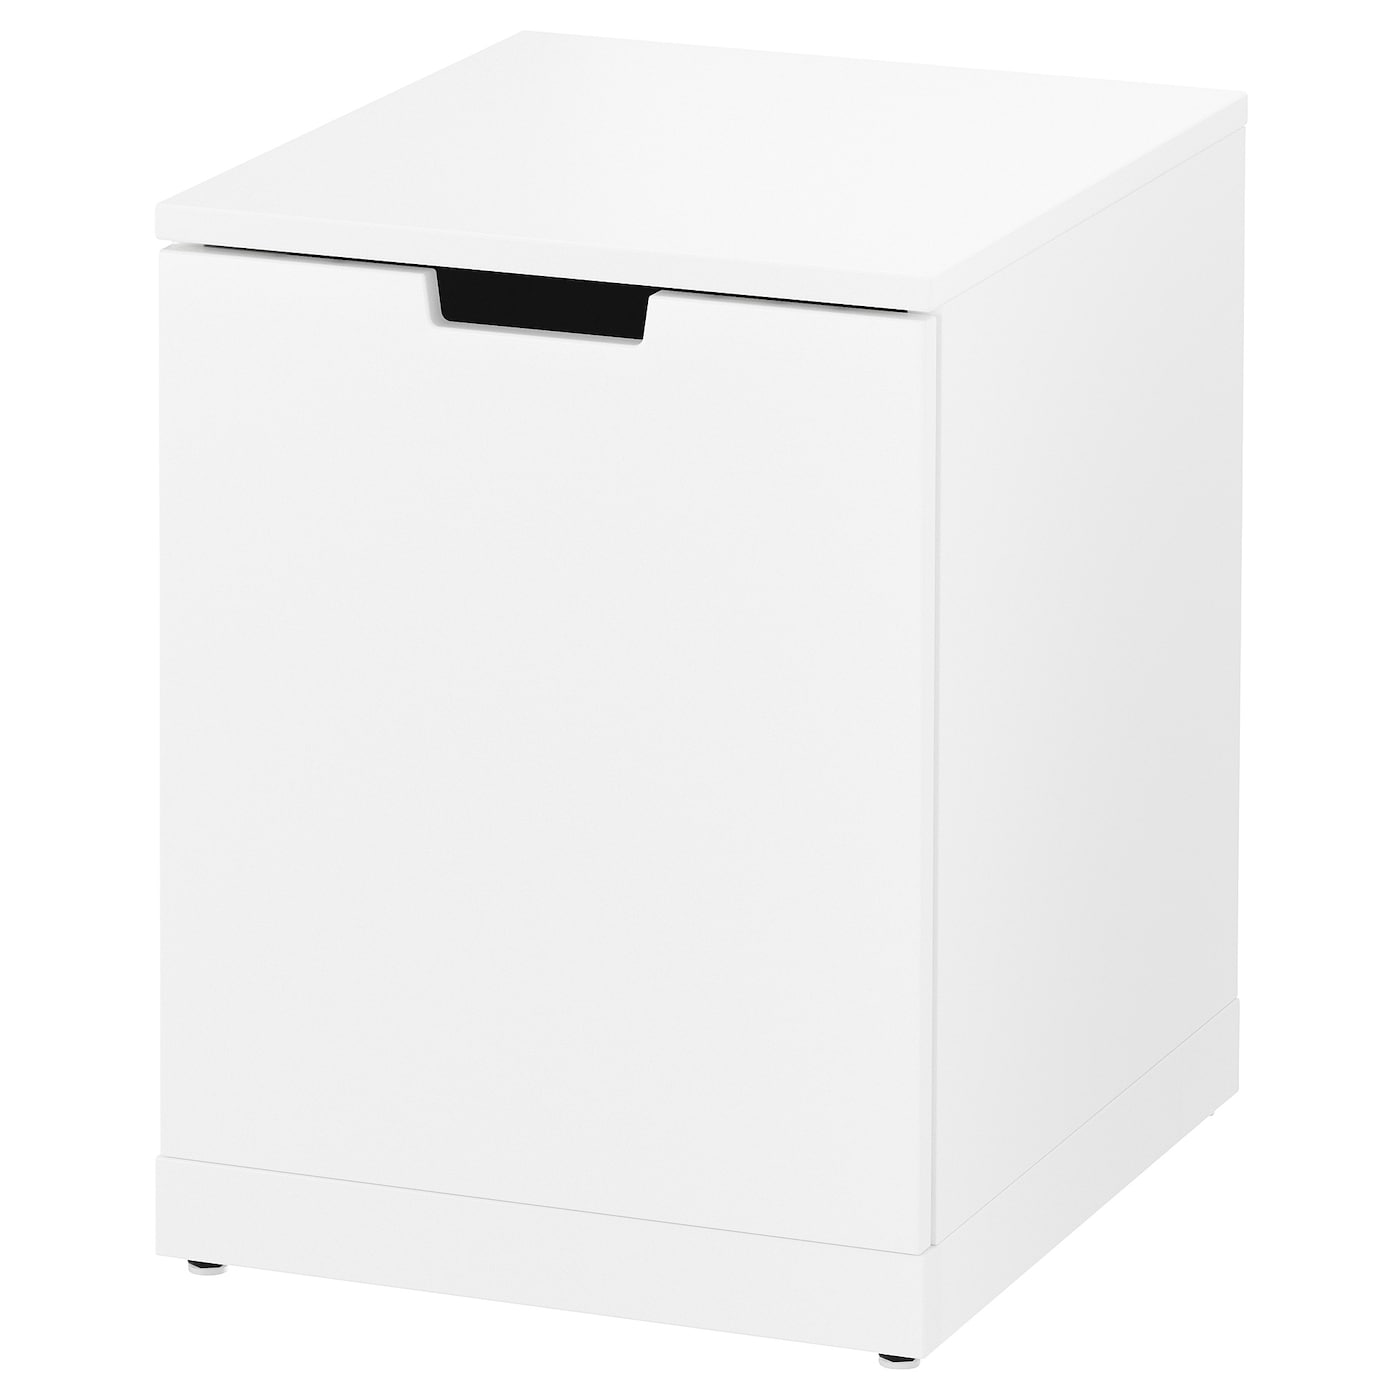 IKEA NORDLI chest of drawers